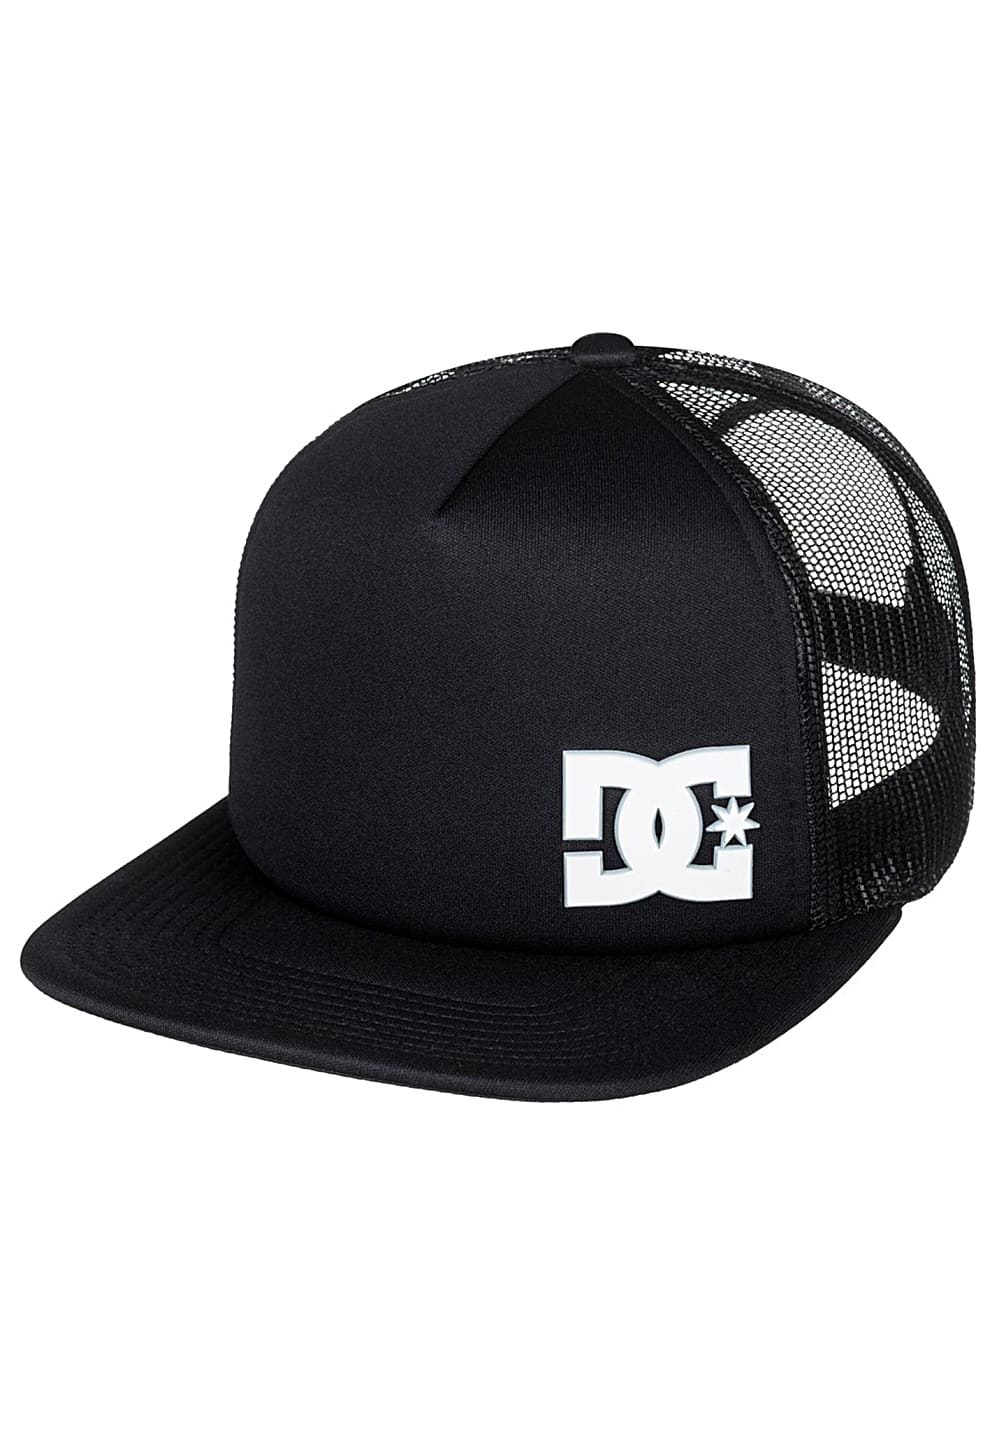 6bcd80d7c58 ... DC Madglads - Trucker Cap for Men - Black. Back to Overview. 1  2.  Previous